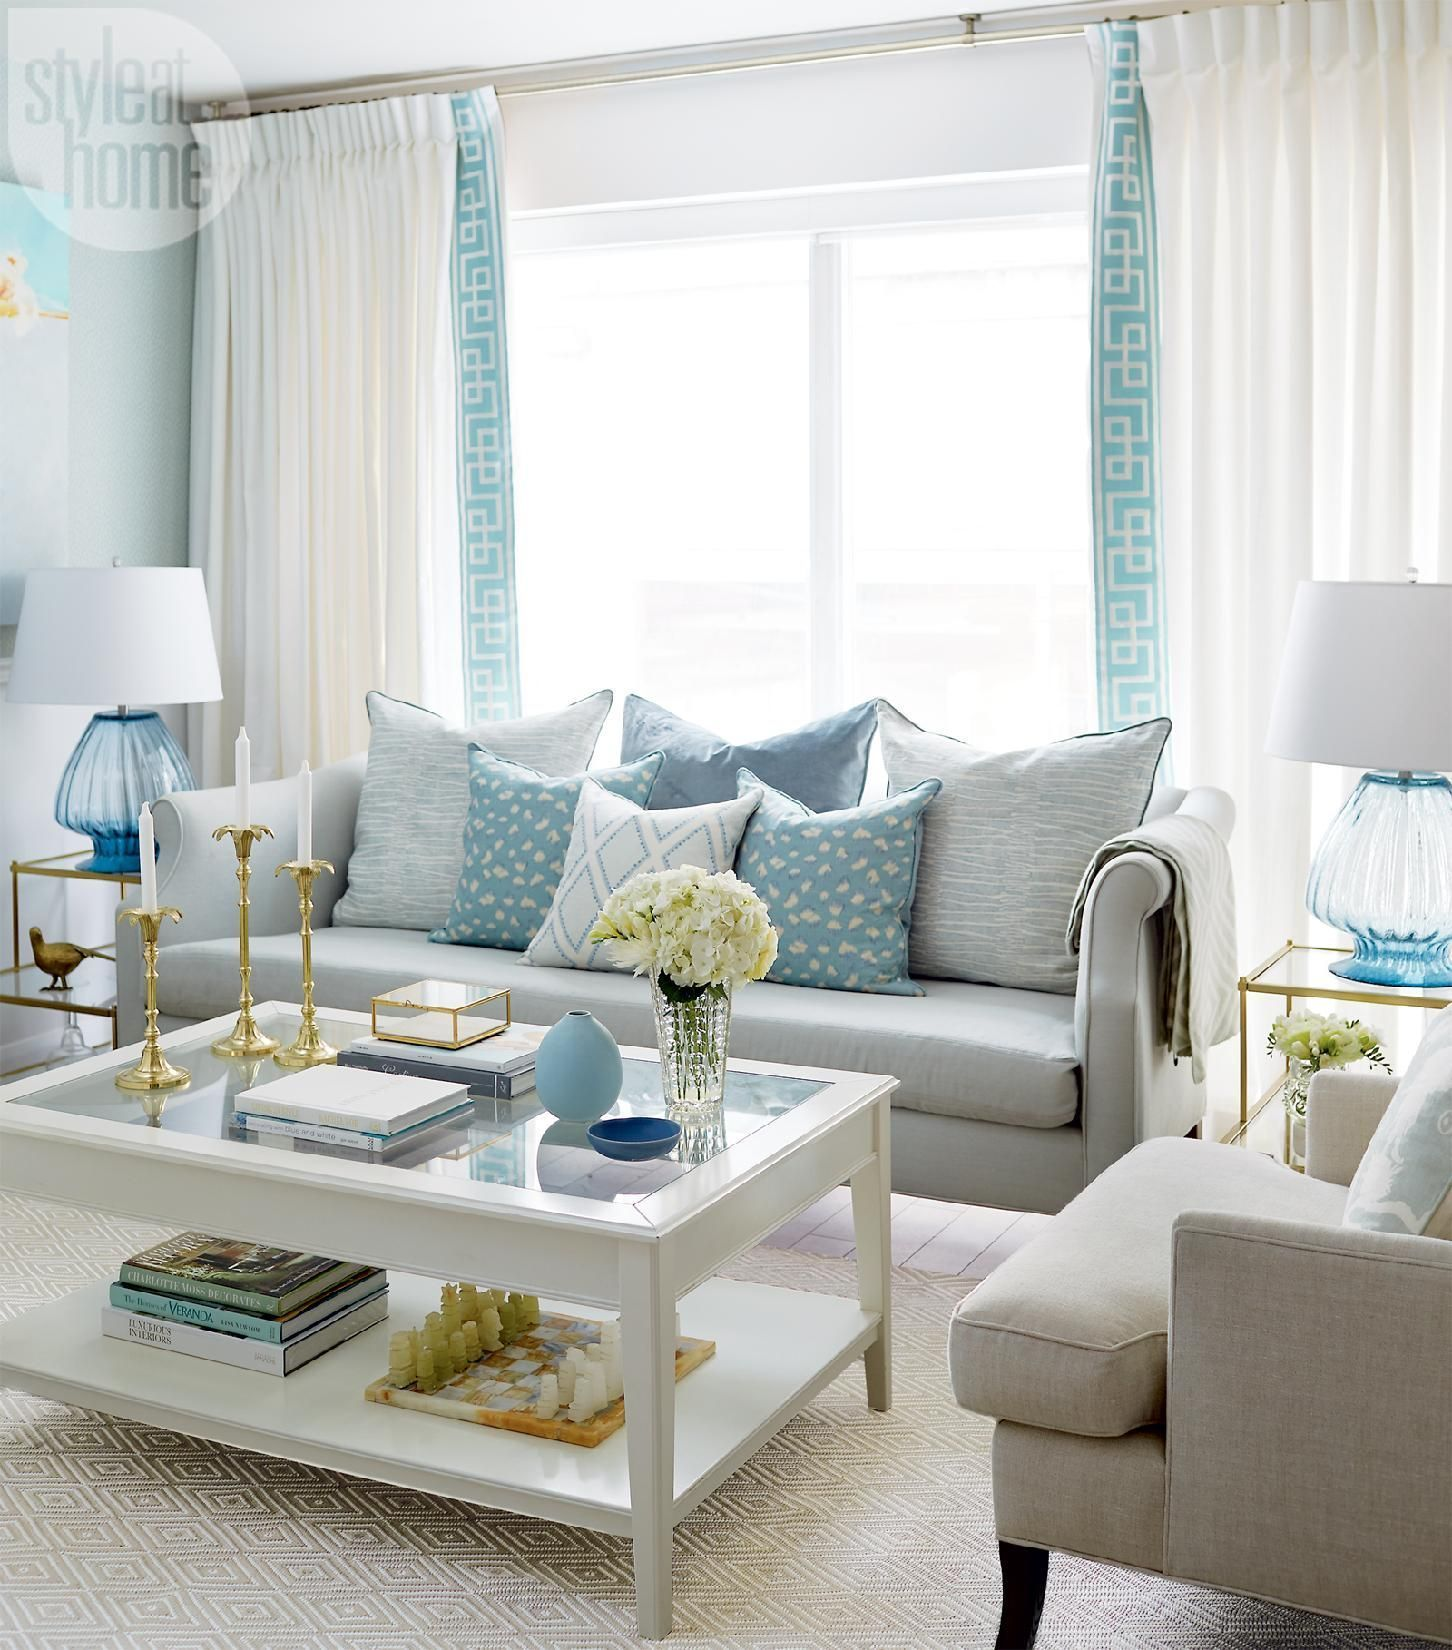 Aqua Living Room Decorating Ideas Gorgeous Lounge Wohnzimmer 46 Beautiful First Home Decorating Ideas On A Budget For